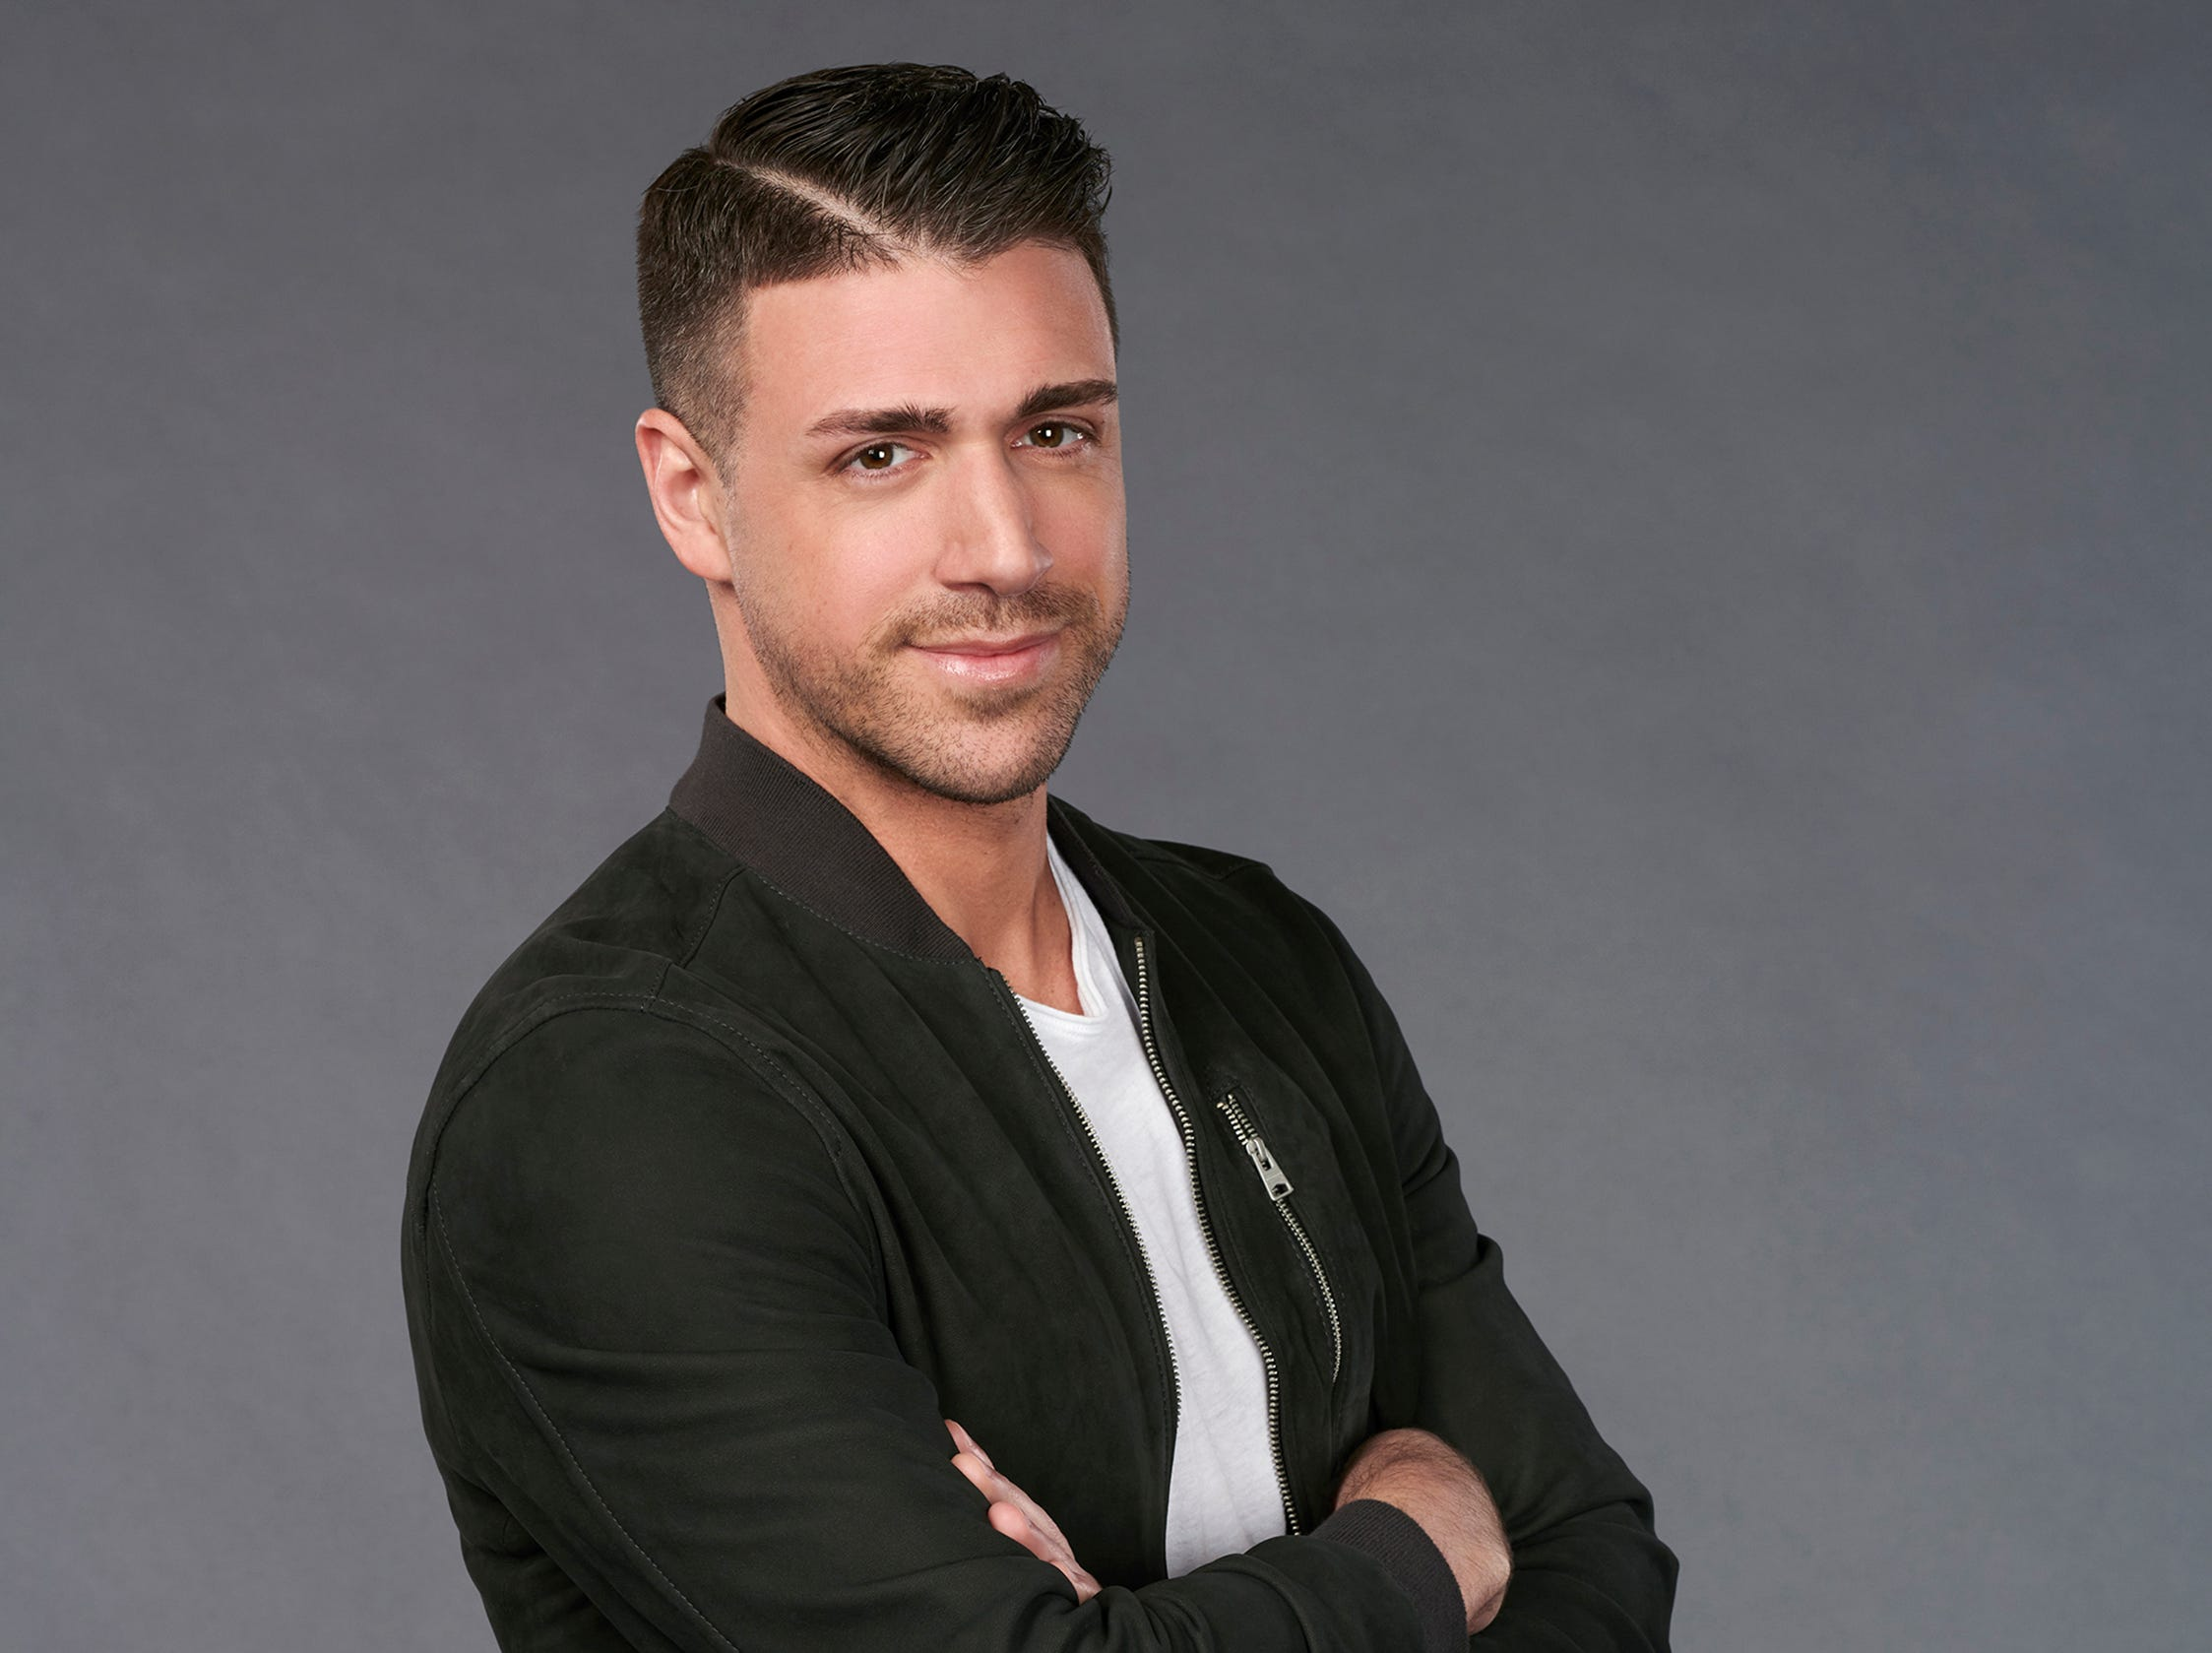 """The Bachelorette"" Season 23 contestant:  Joey, 33, Bethesda, Maryland, finance manager"